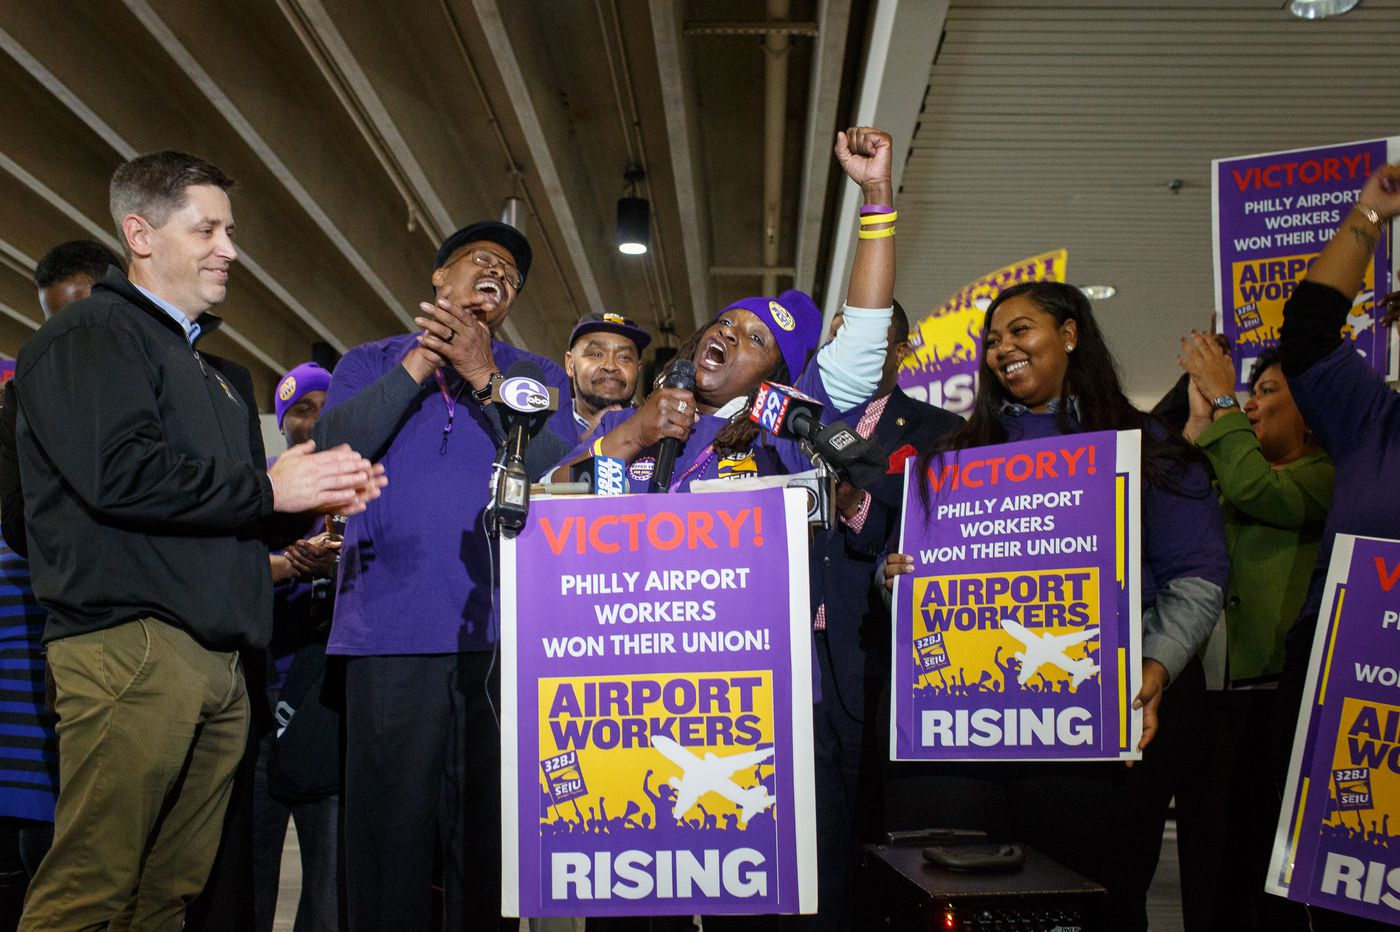 It took 6 years for PHL airport workers to double their pay to $12 an hour. Here's how they did it